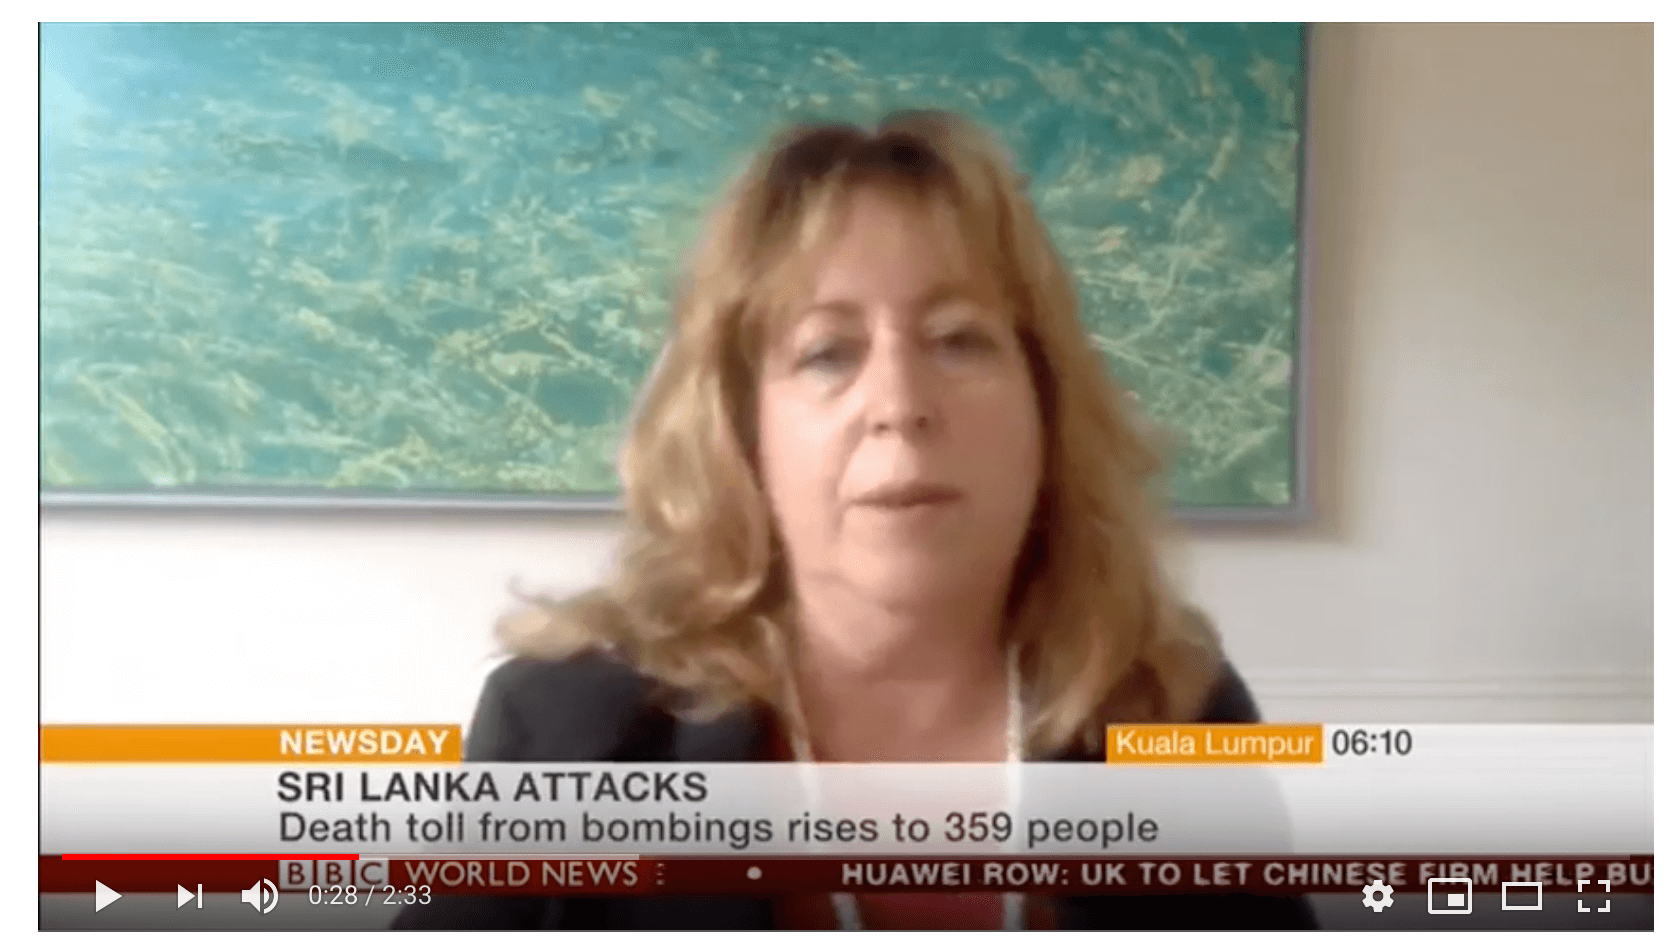 ICSVE's Anne Speckhard On BBC World News